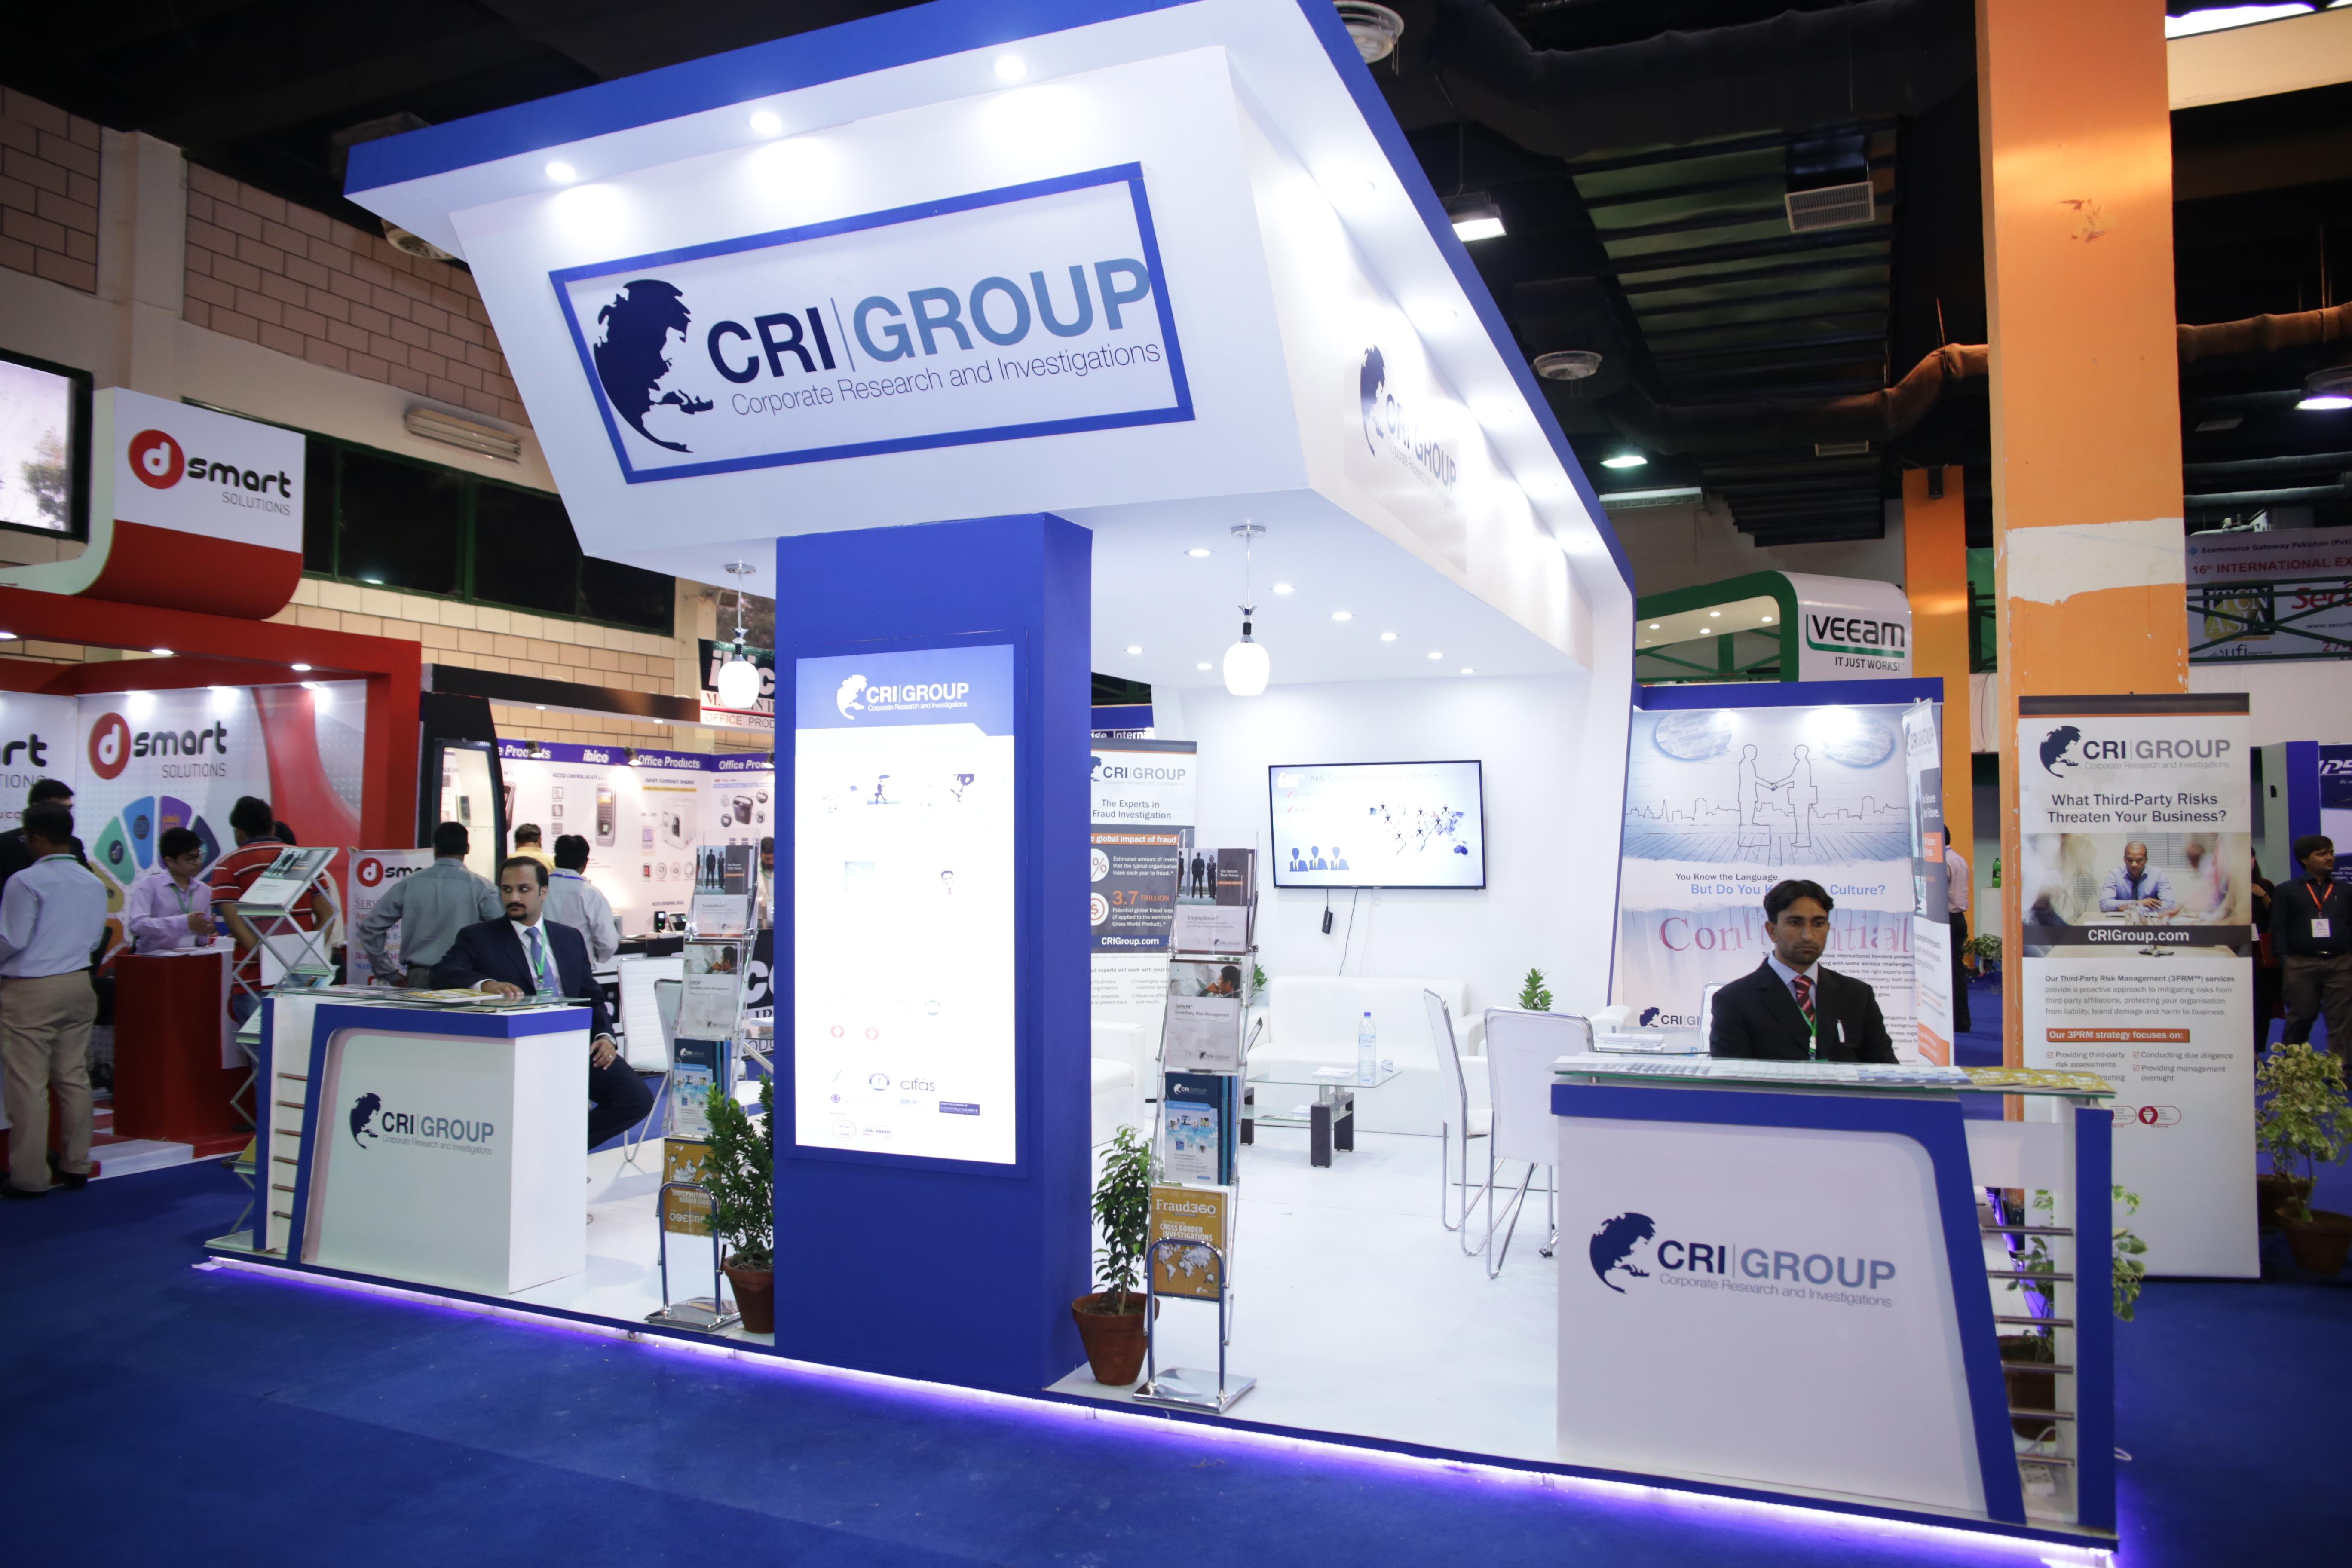 CRI Helps IT Companies to Prevent Fraud with EmploySmart, IP Security Solutions and 3PRM